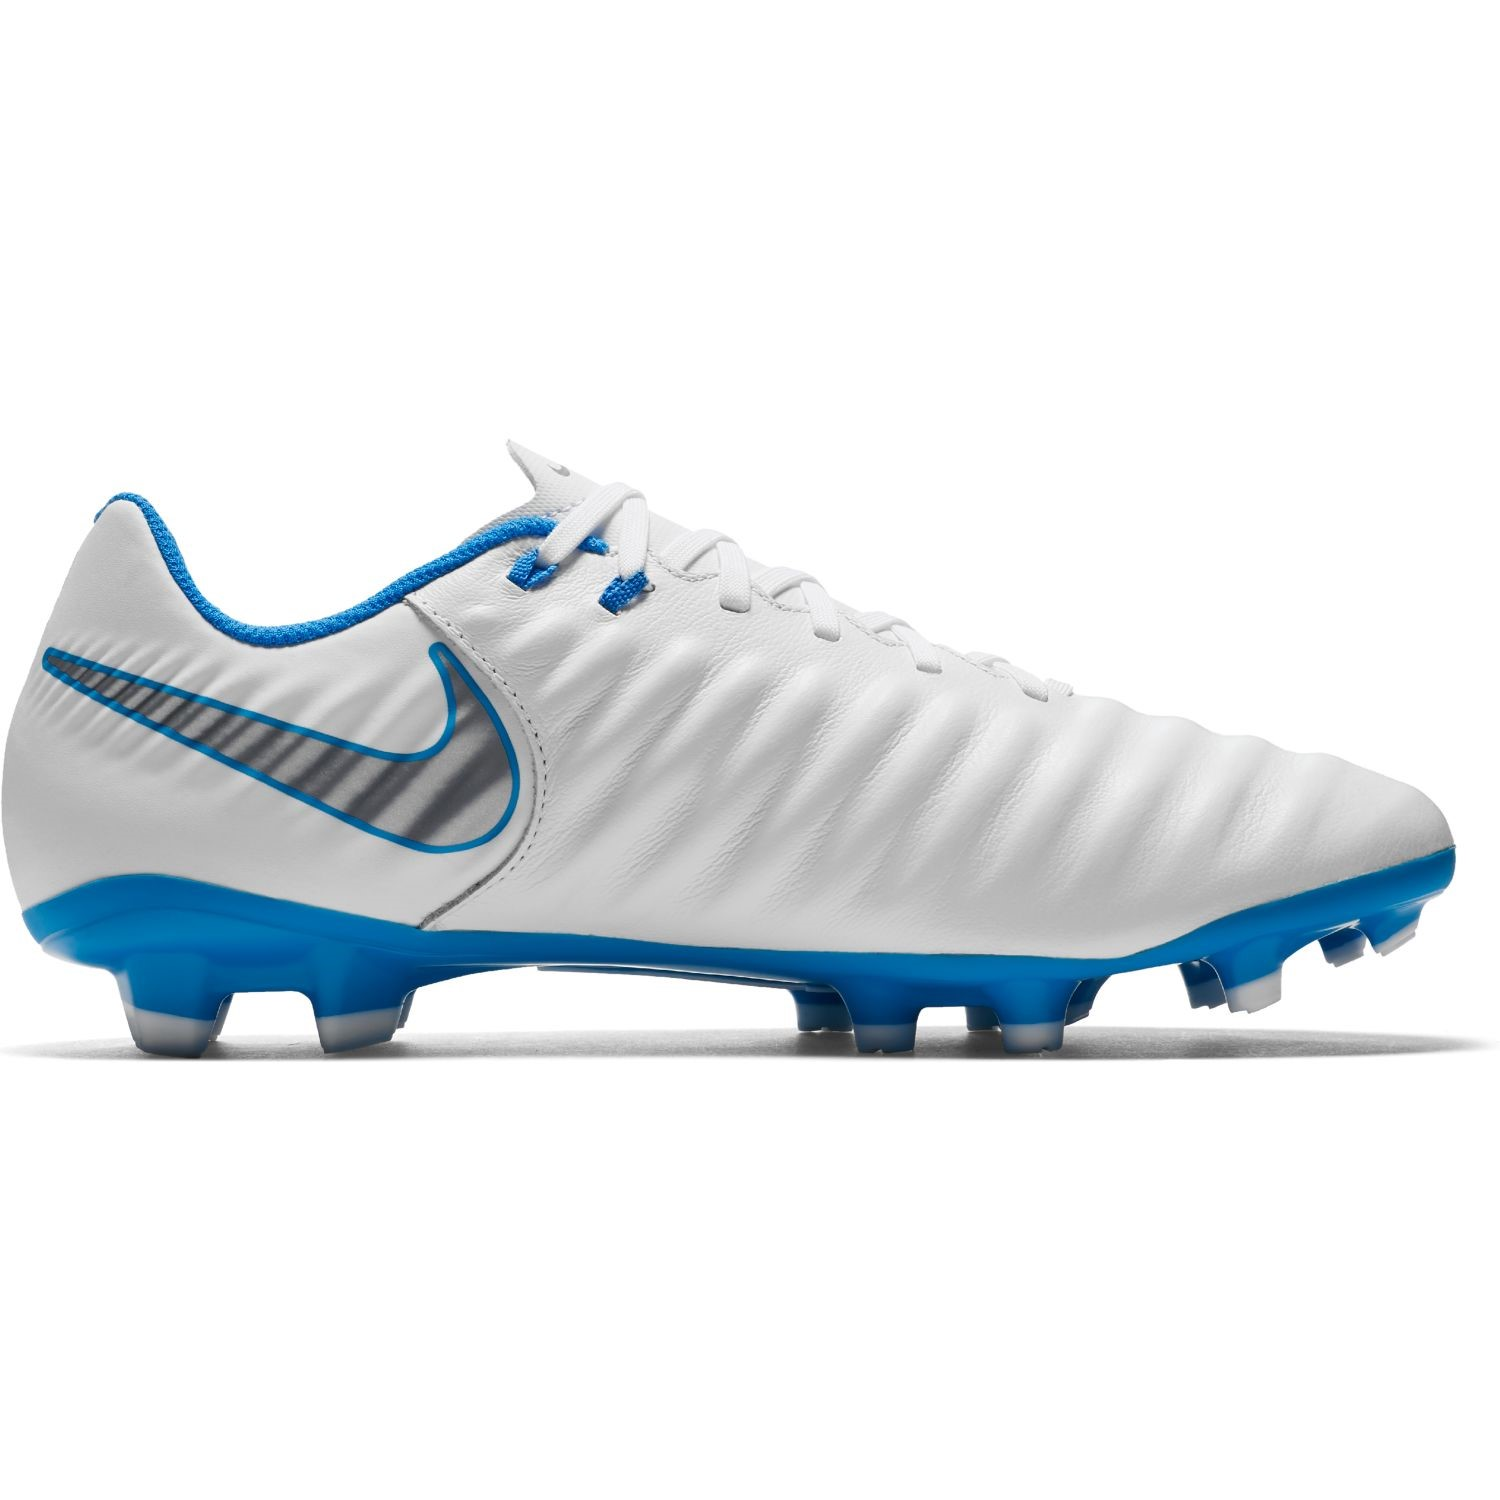 a4622855b72 Nike Tiempo Legend VII Academy FG - Mens Football Boots - White Blue Hero